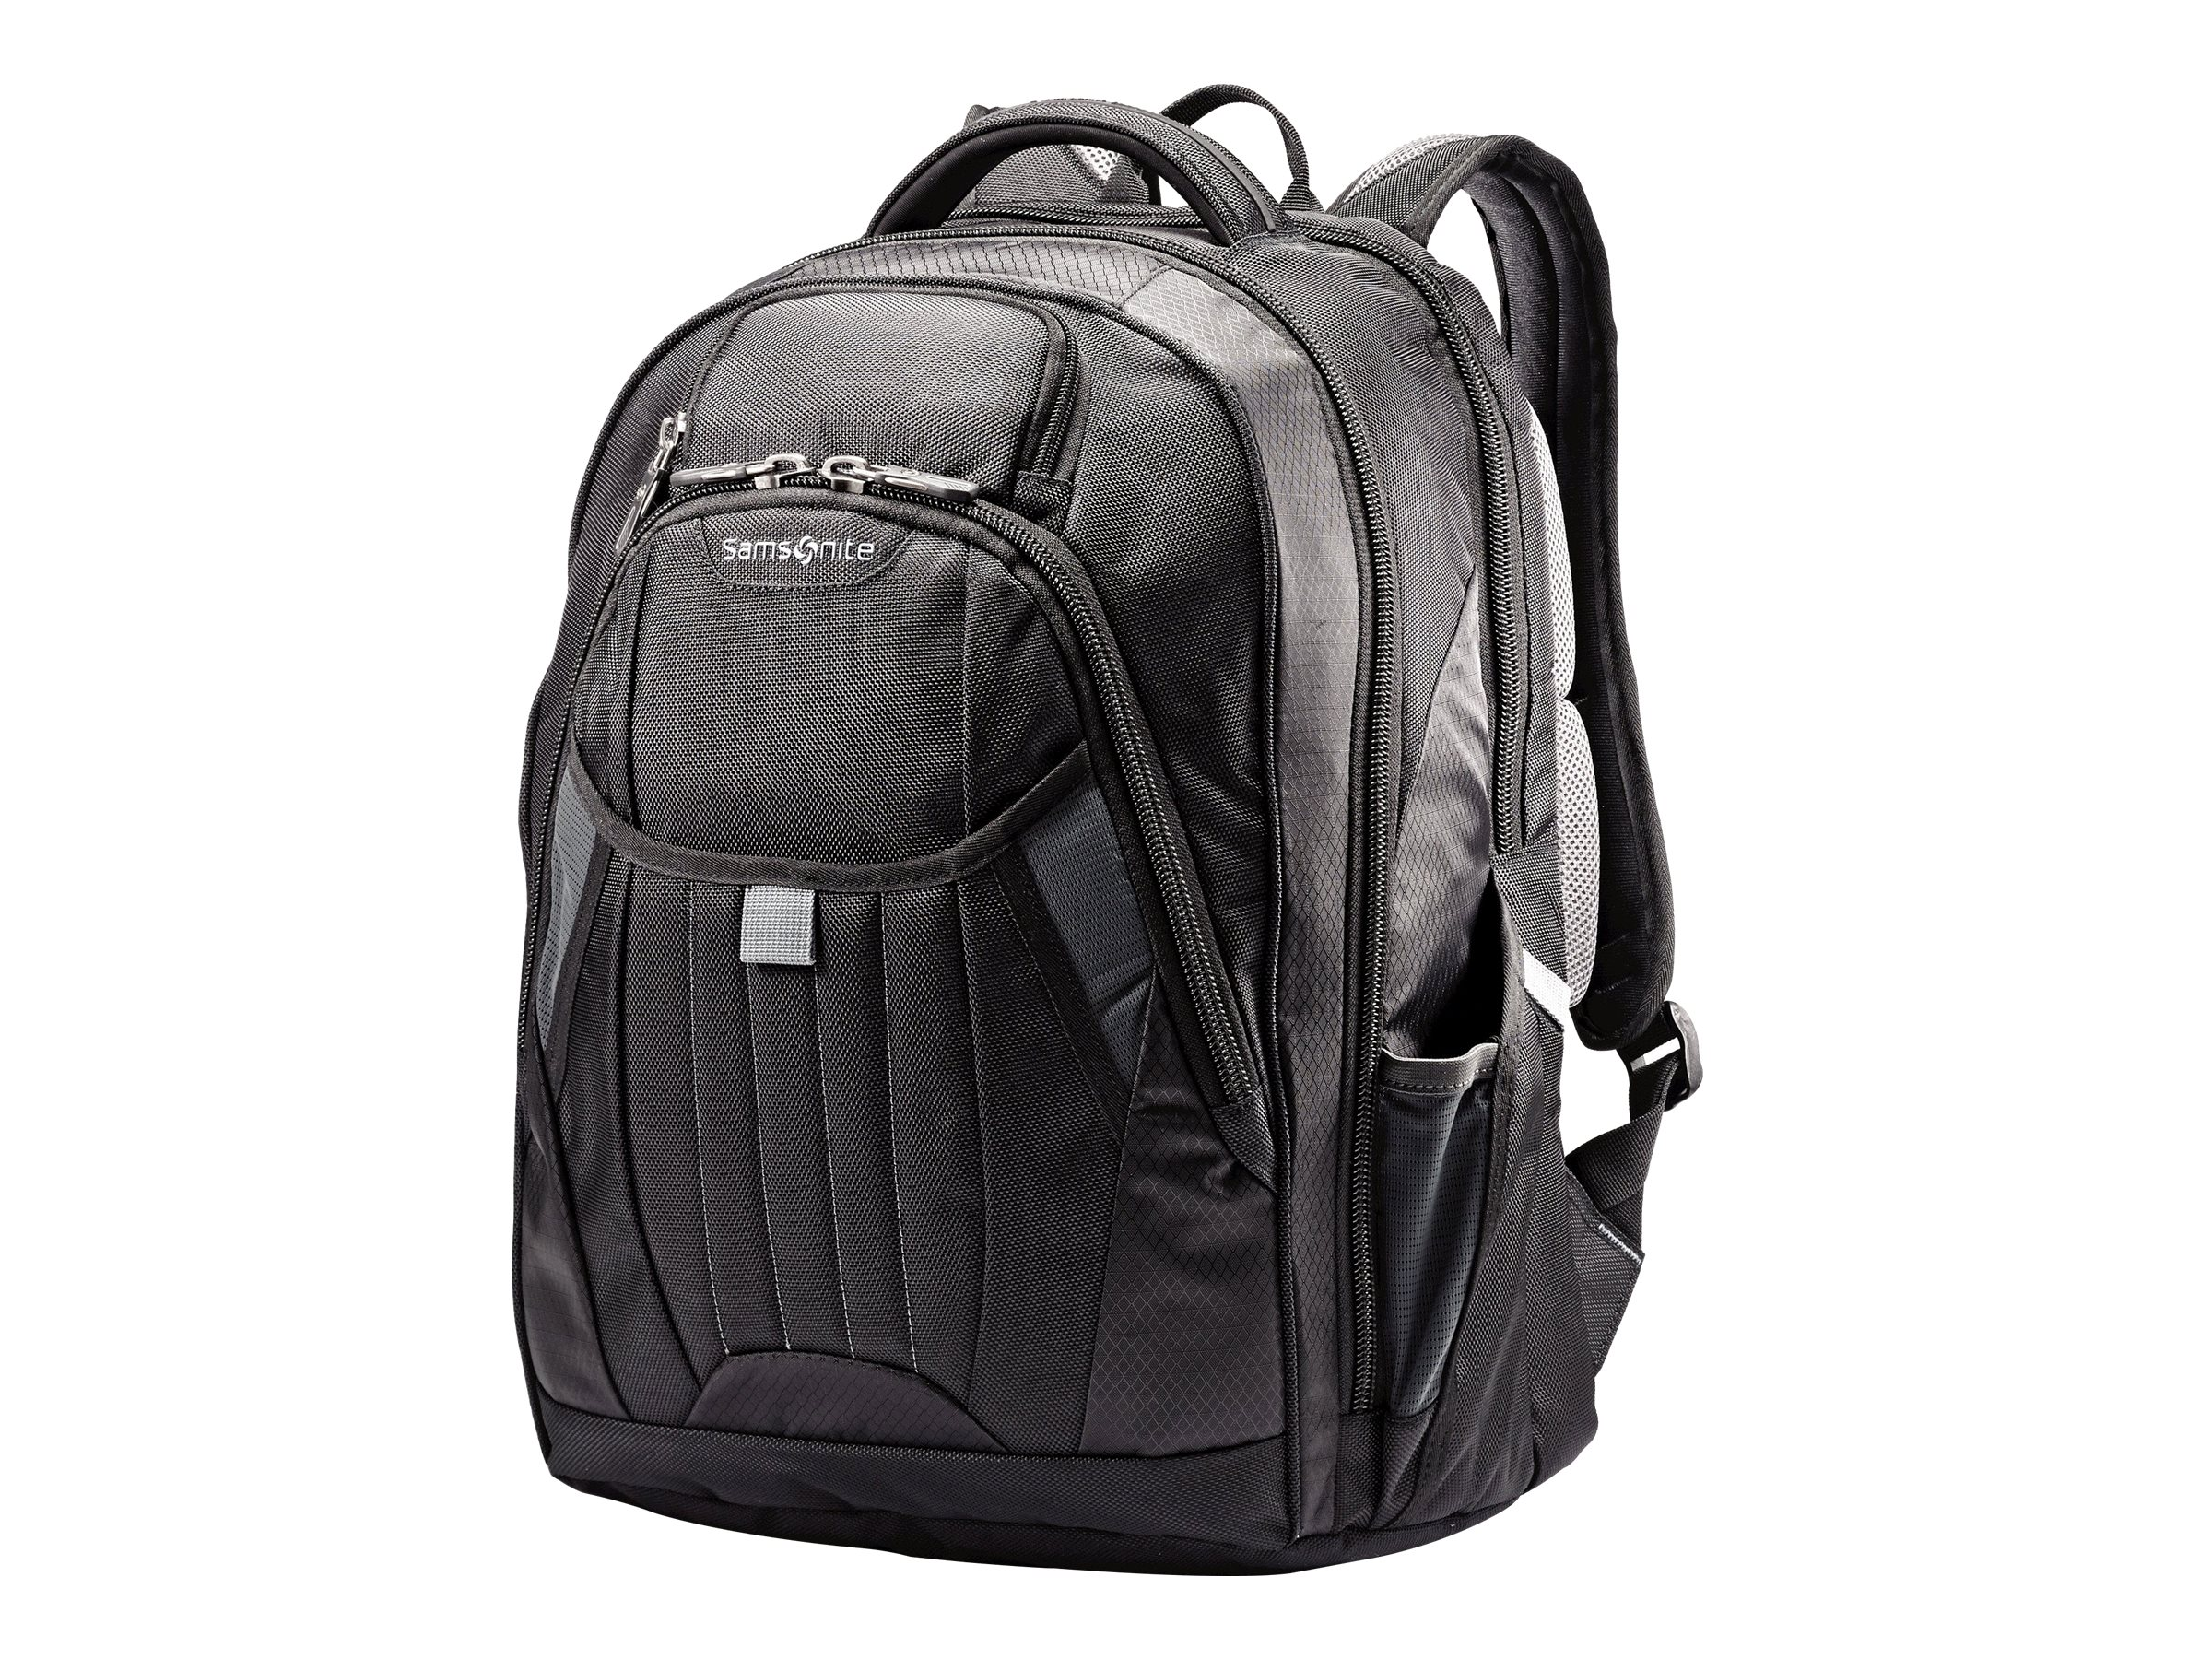 Stephen Gould Tectonic 2 Large Backpack 17, Black Black